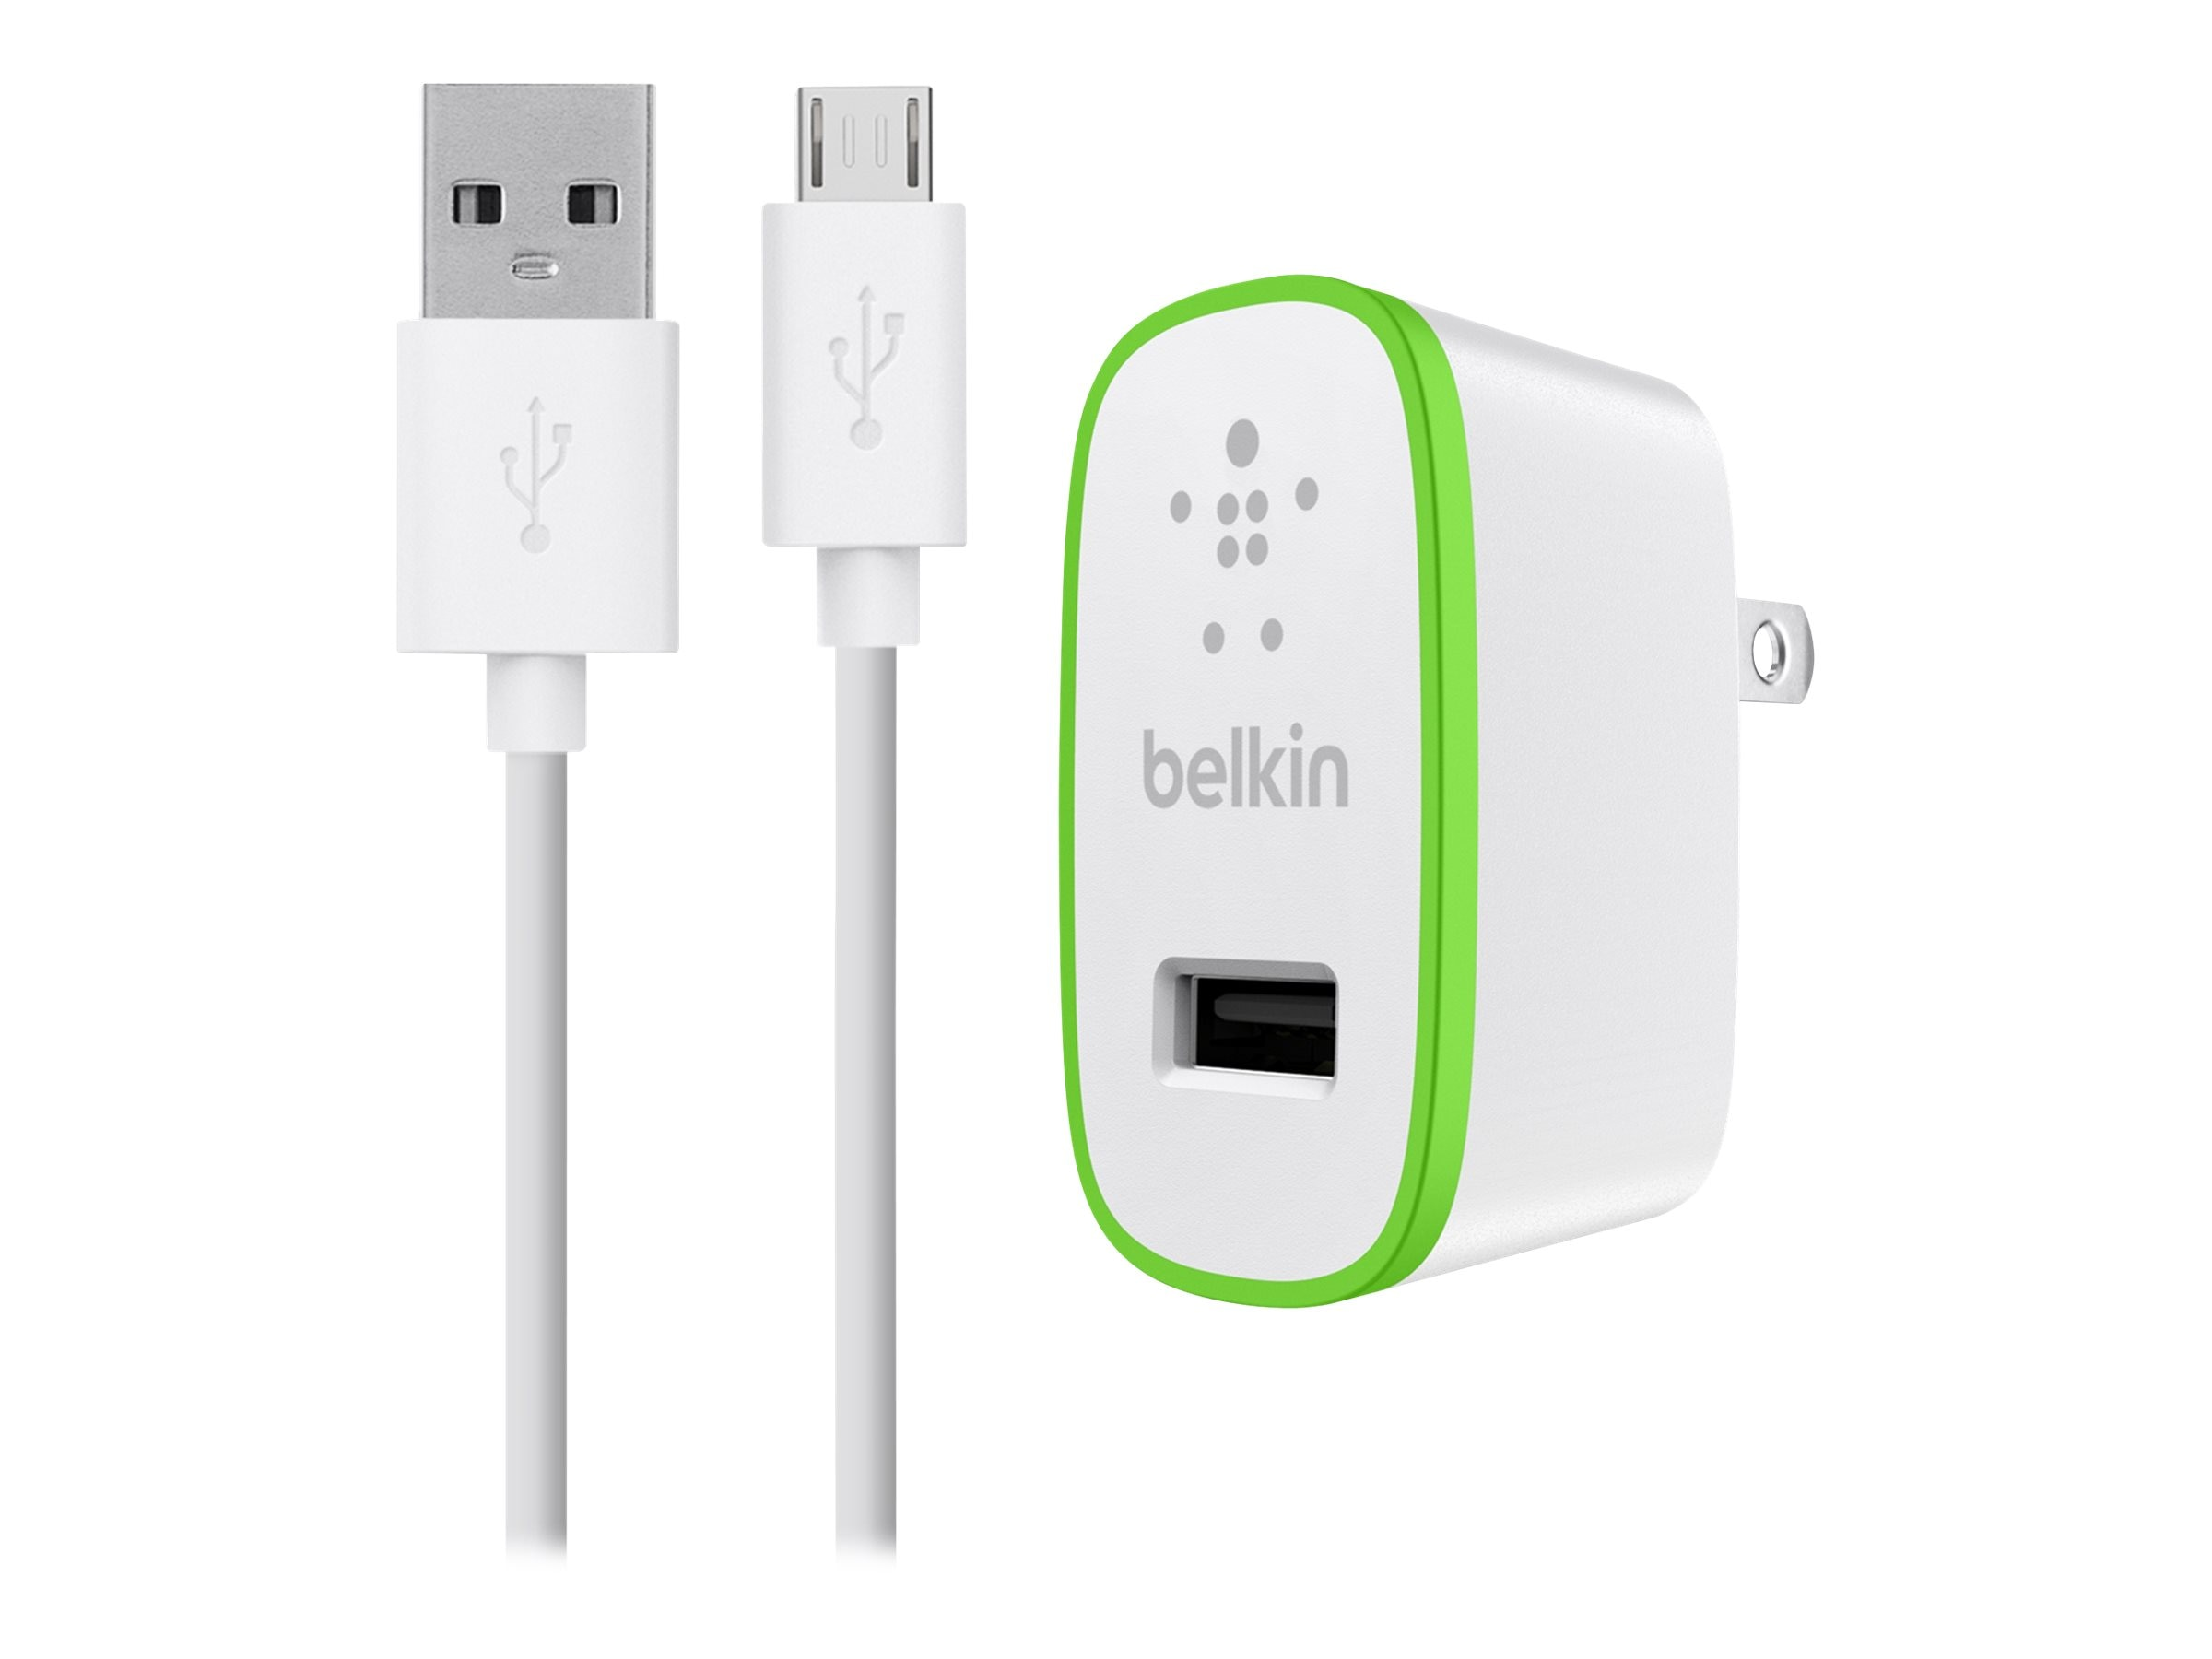 Belkin Universal Home Charger, Micro-USB Charge Sync Cable, 10W 2.1A, White, F8M667TT04-WHT